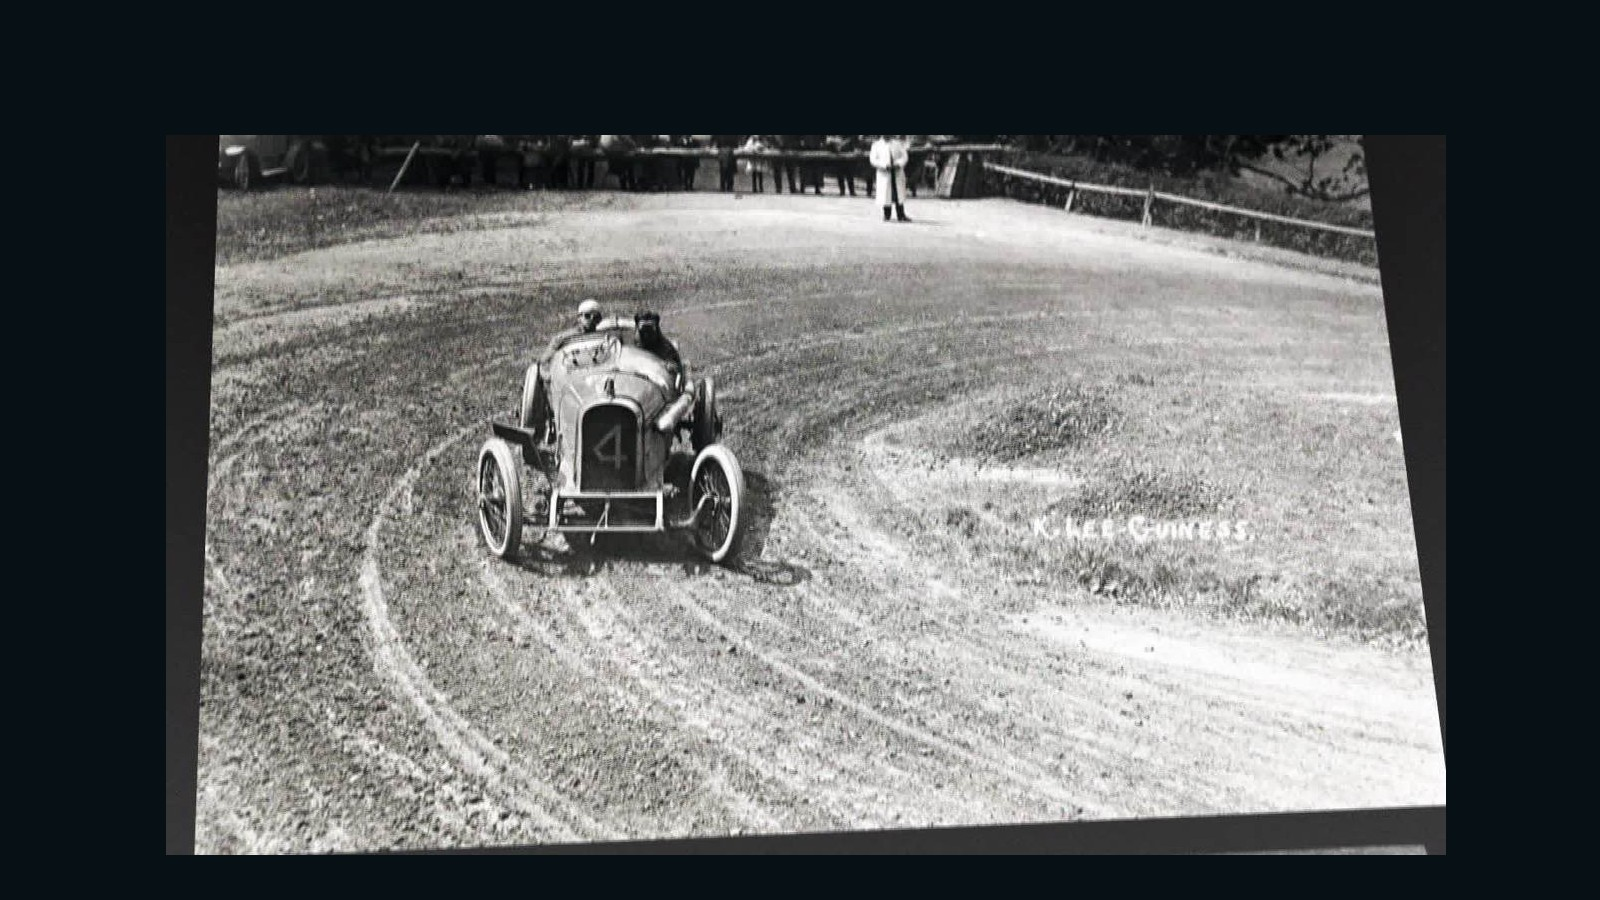 This 1914 classic car is still racing today - CNN Video